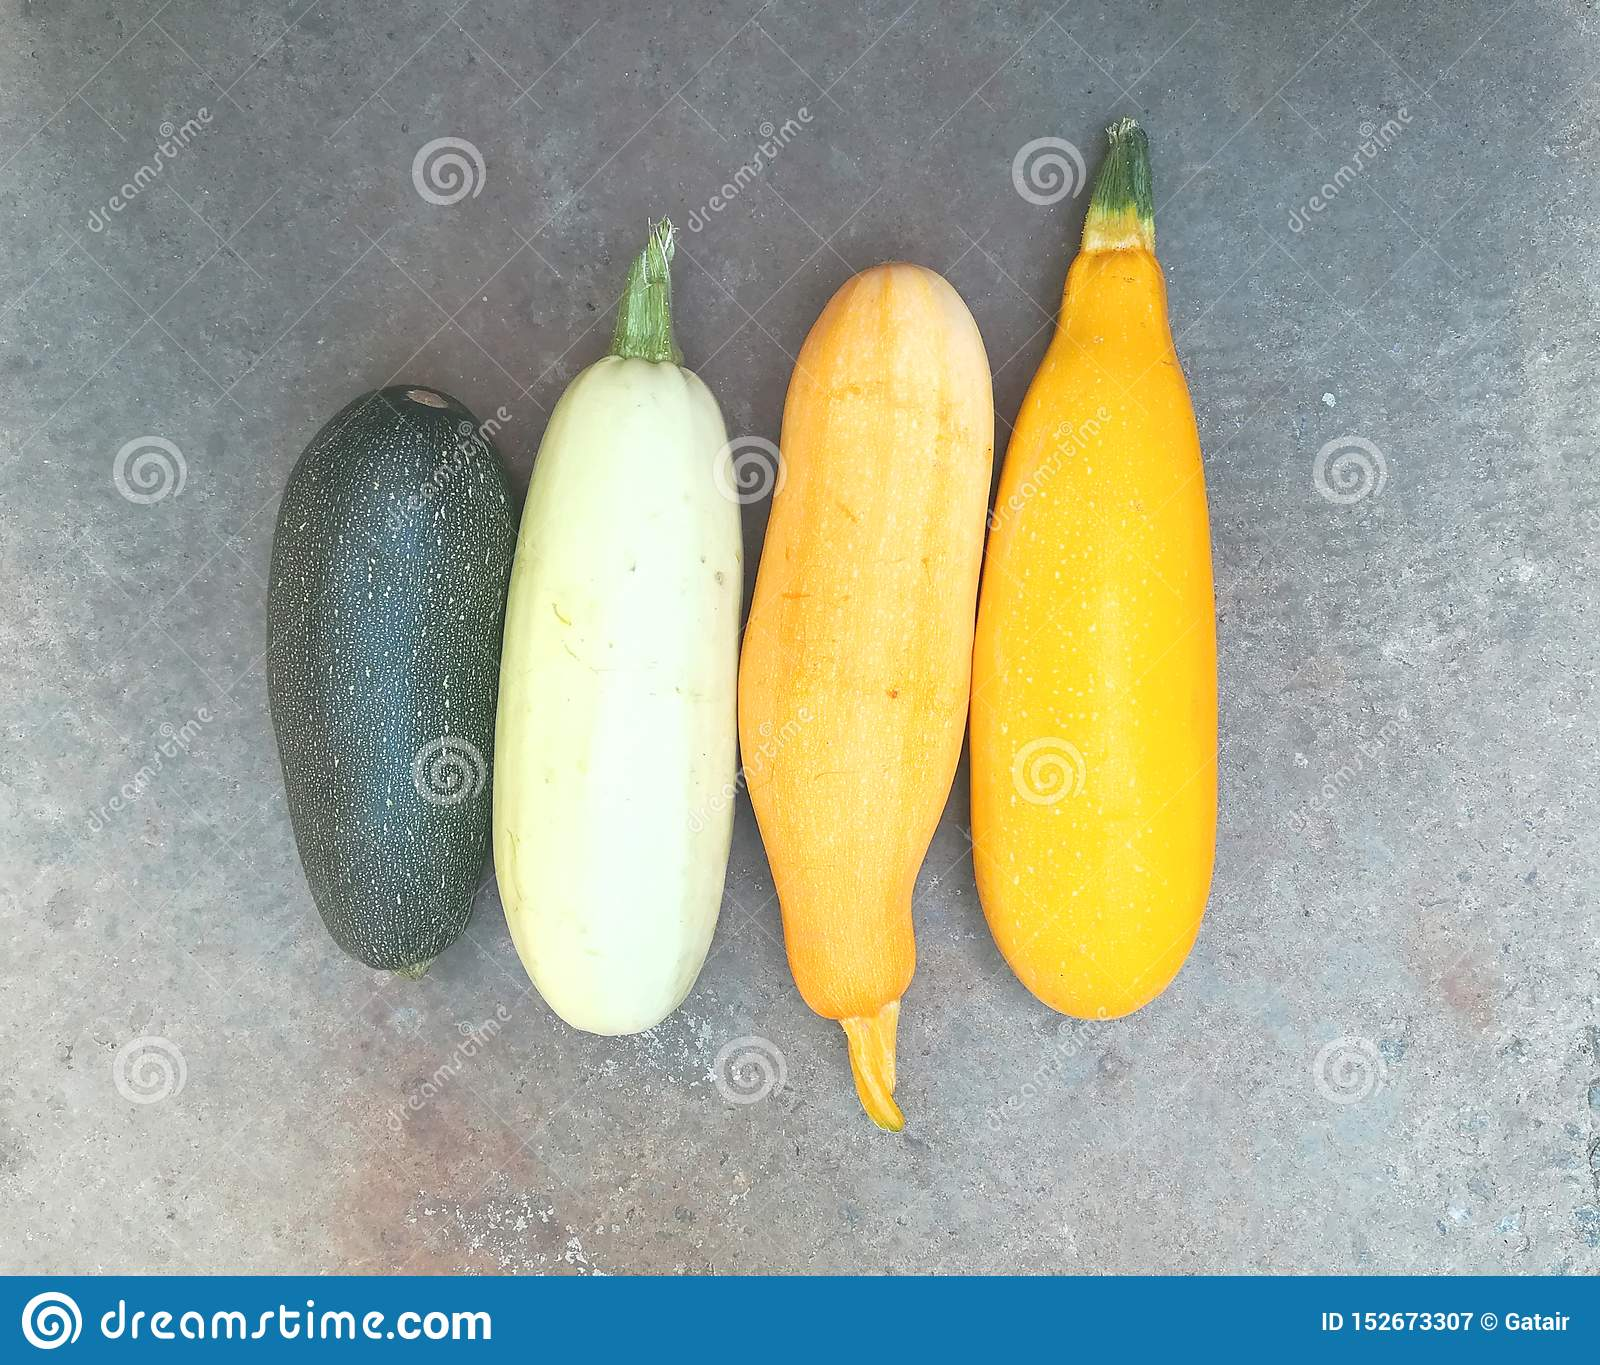 Yellow and green colored zucchini are on the pavement. Multicolored vegetables. New crop. Summer autumn. Freshly plucked zucchini